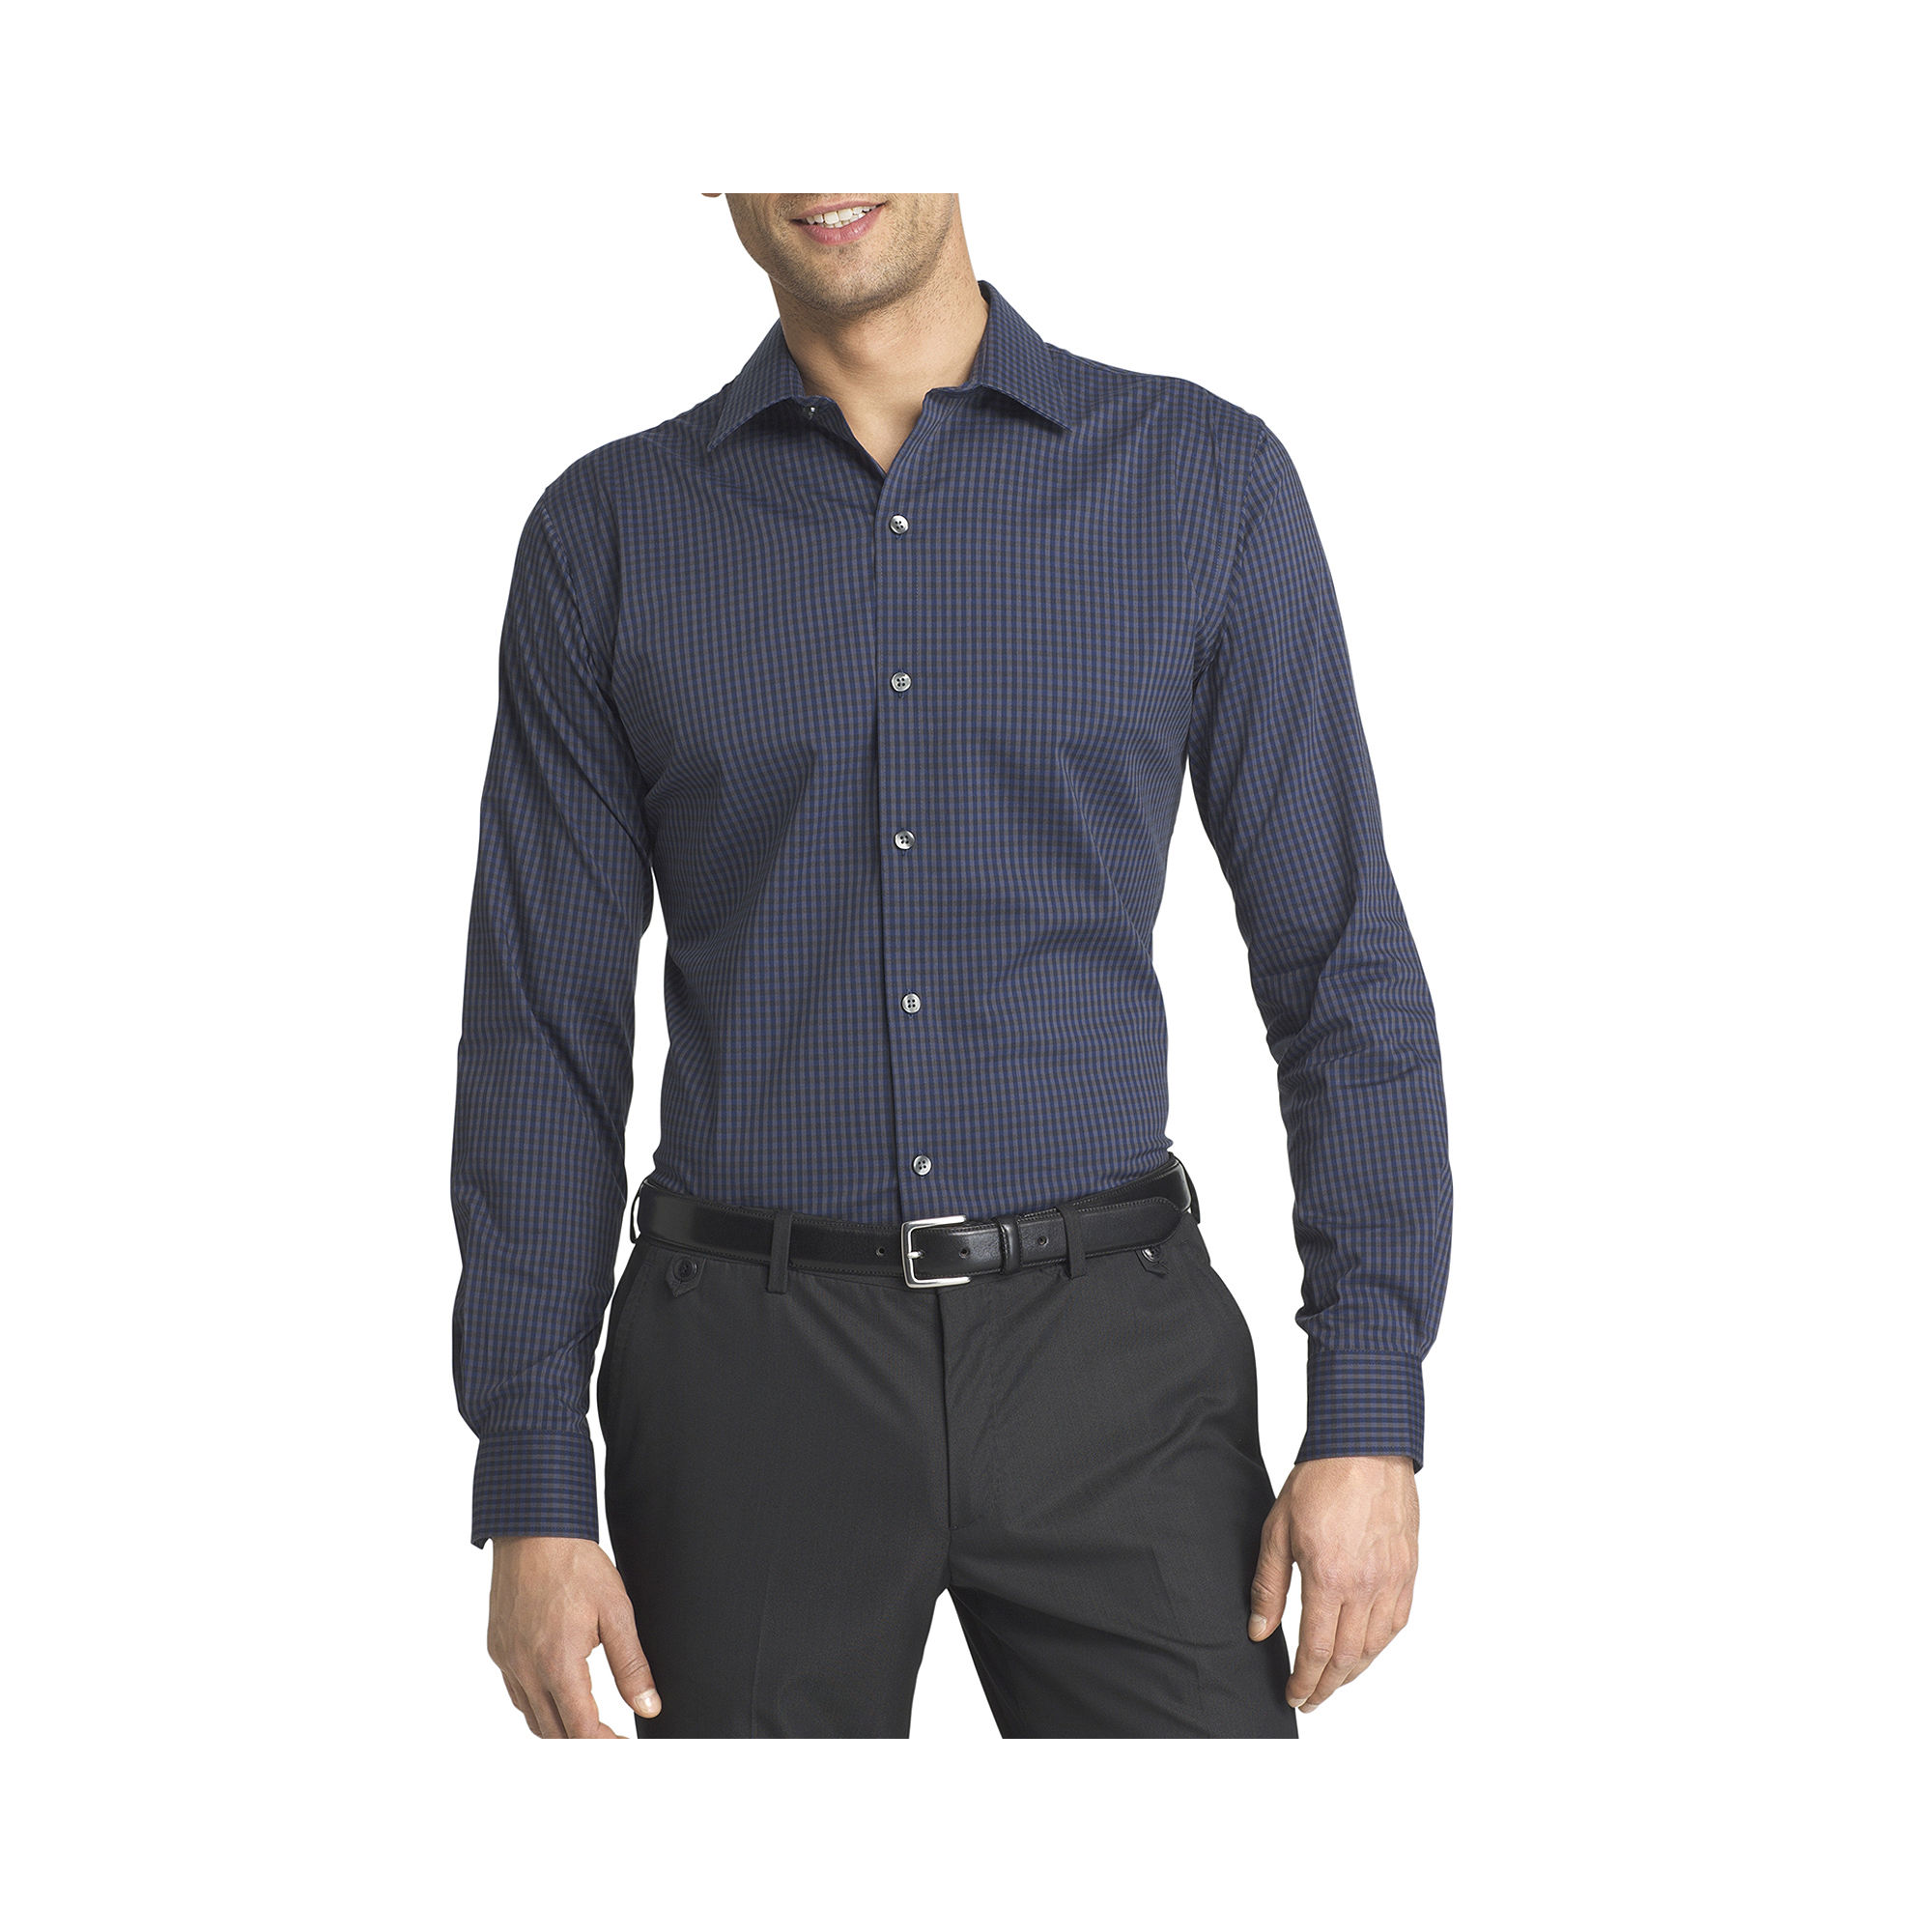 Upc 767672038884 Van Heusen Long Sleeve Slim Fit Dress Shirt